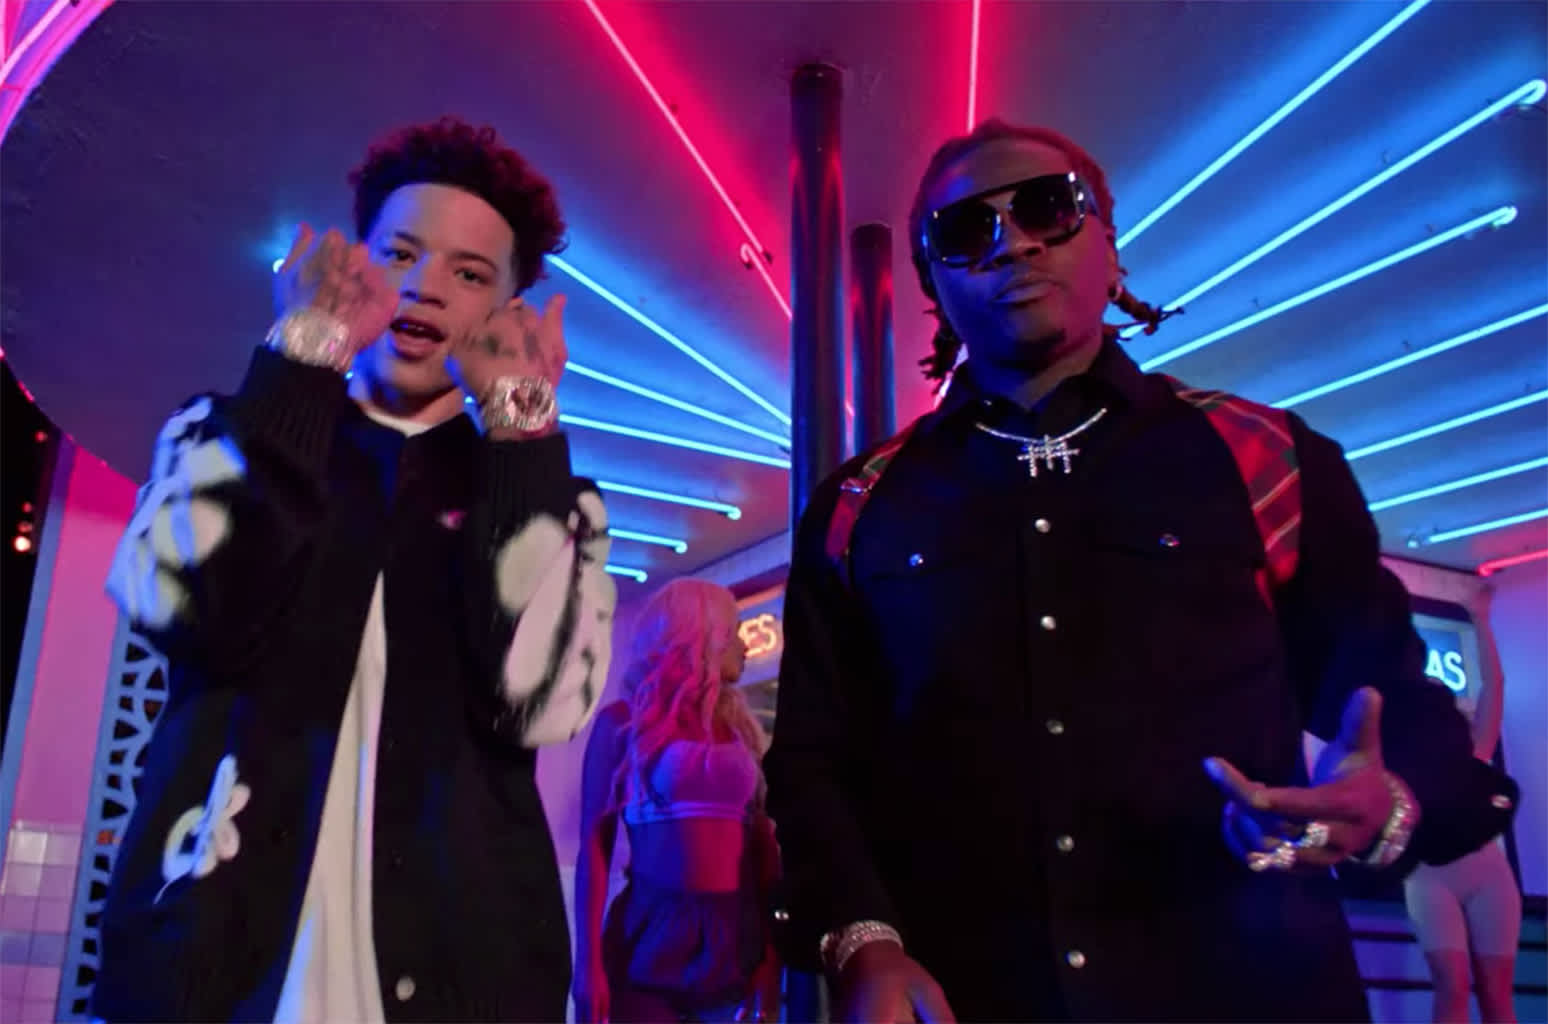 Lil Mosey - Stuck In A Dream ft. Gunna